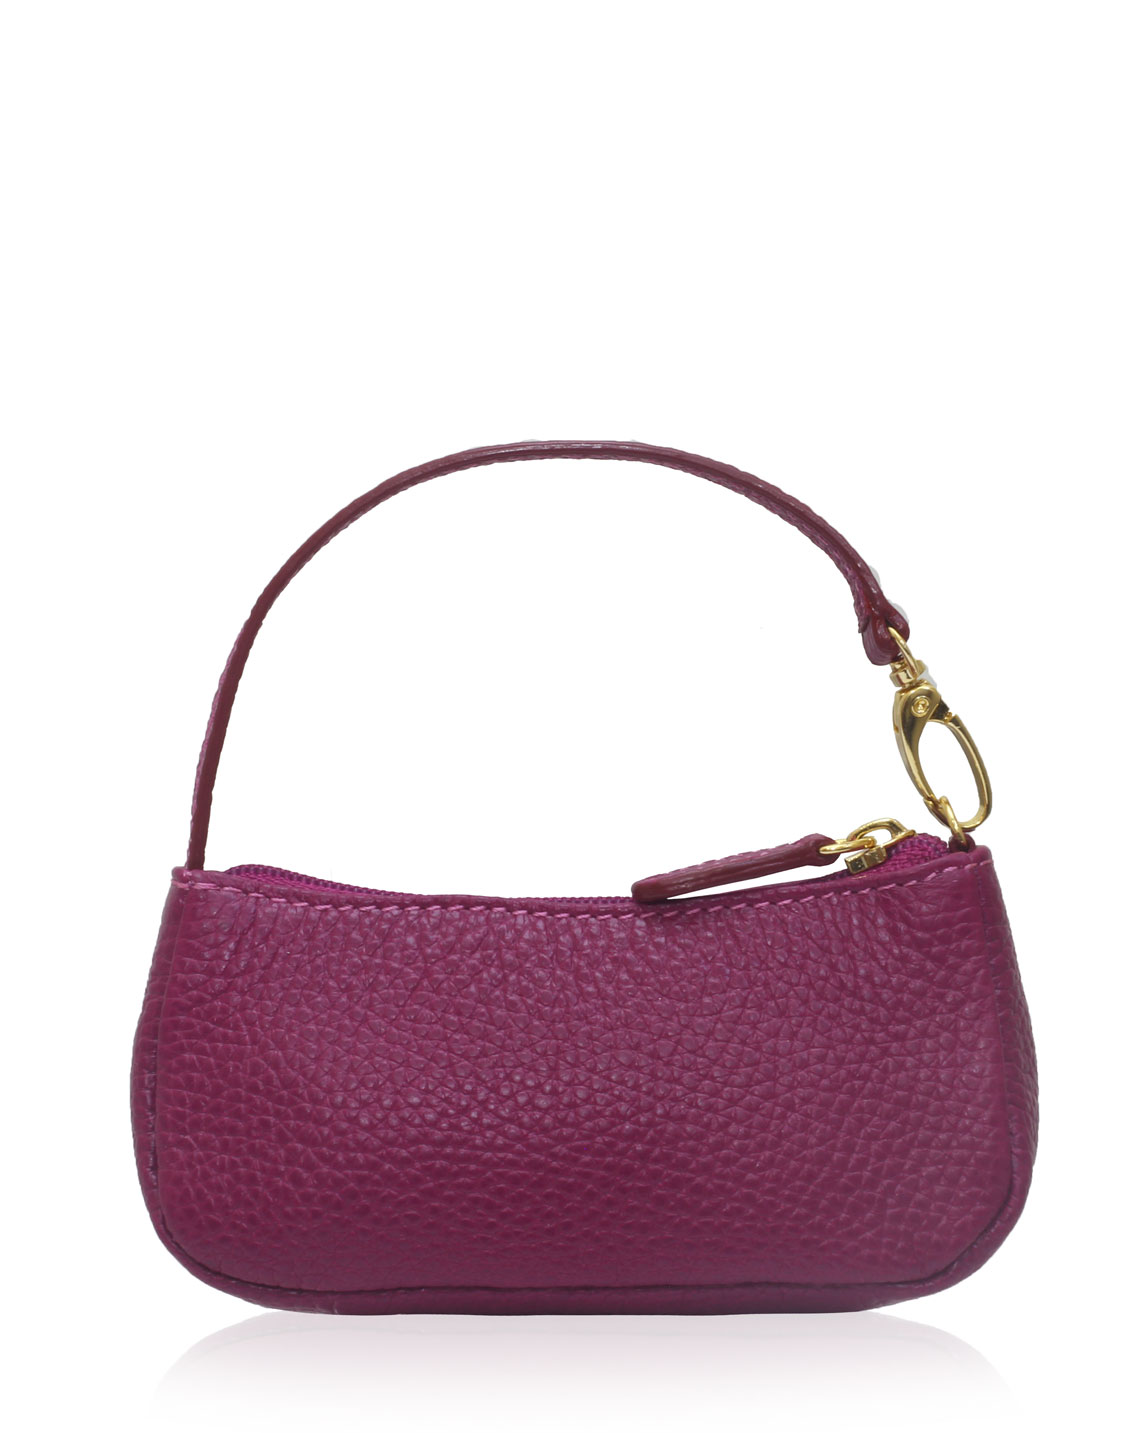 Monedero M-26 Color Fucsia